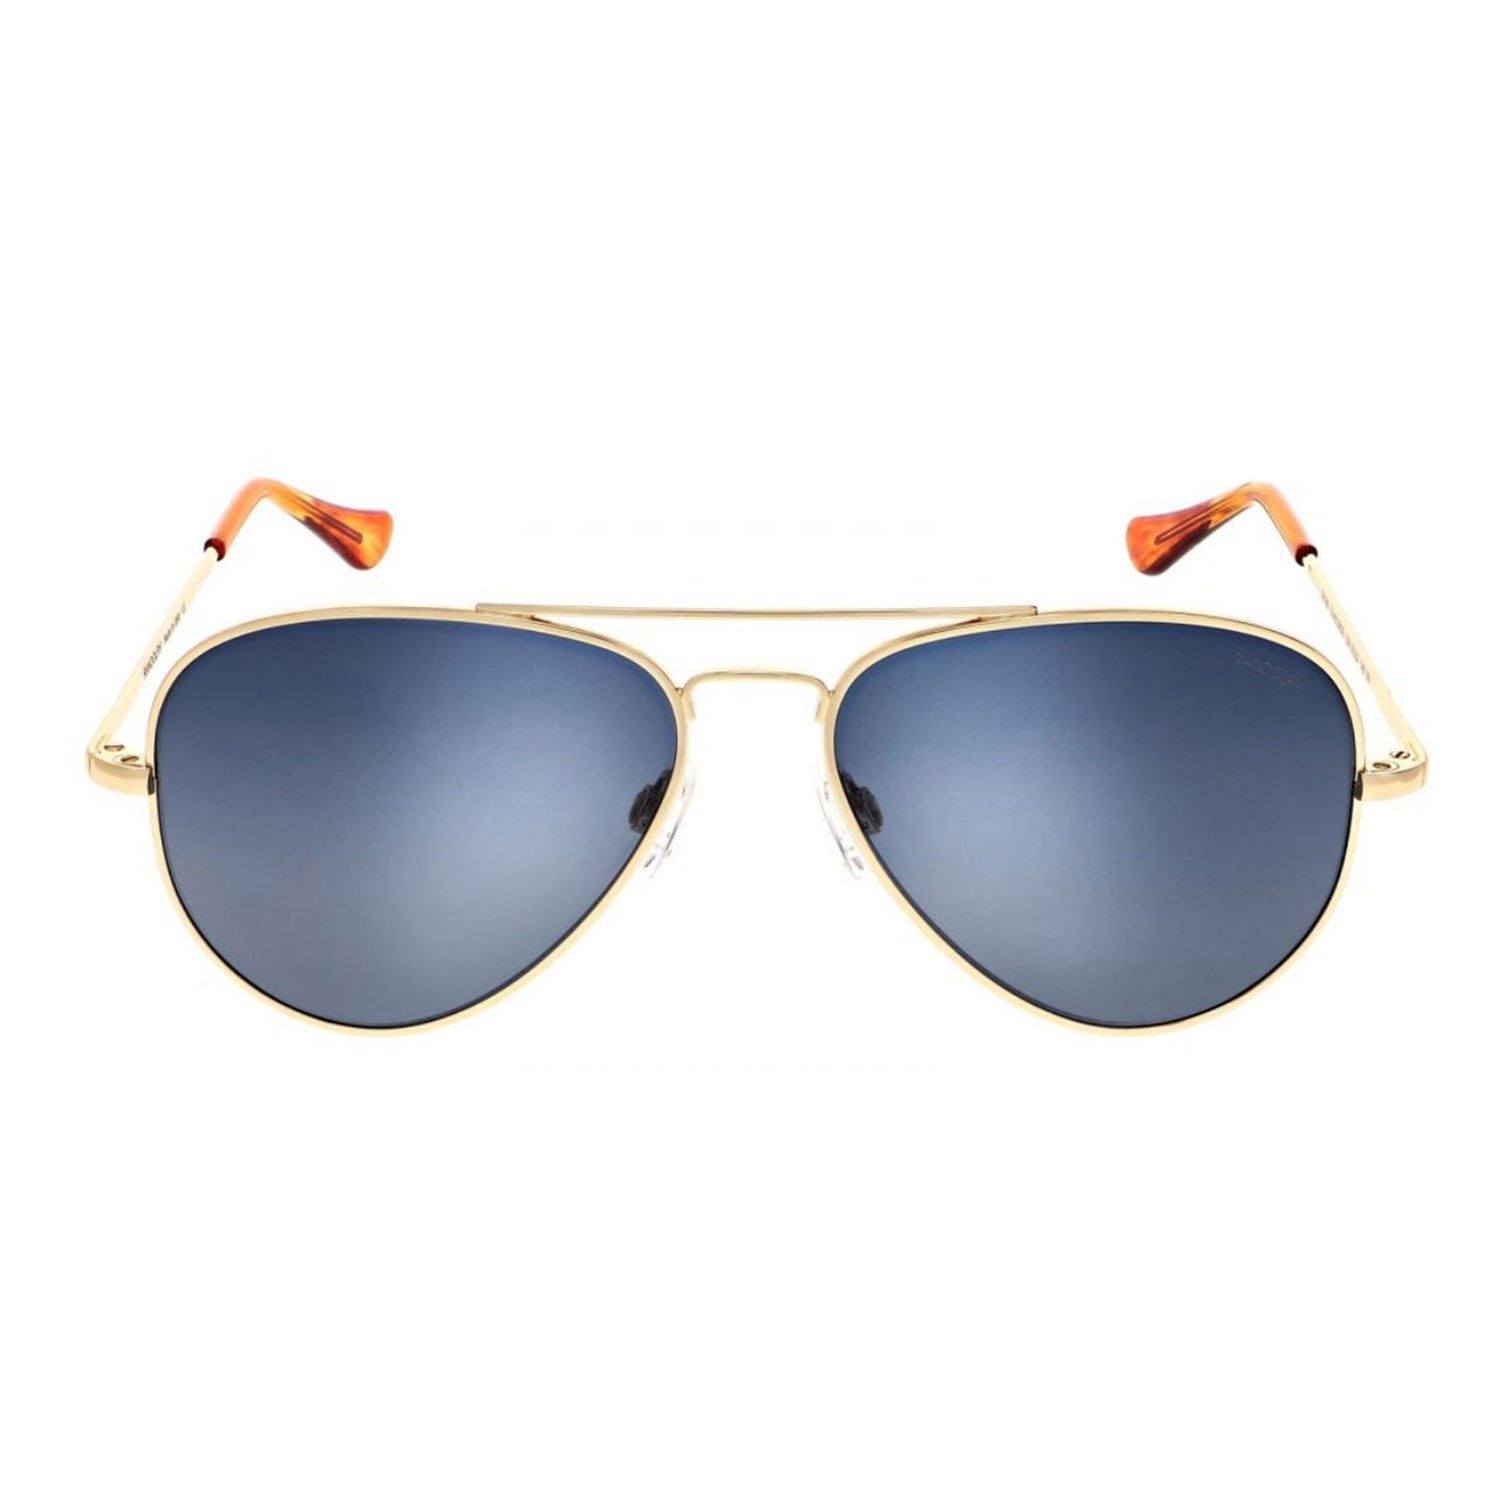 Concorde Aviators, 23k Gold Frames with Slate Lenses by Randolph - Talisman Collection Fine Jewelers